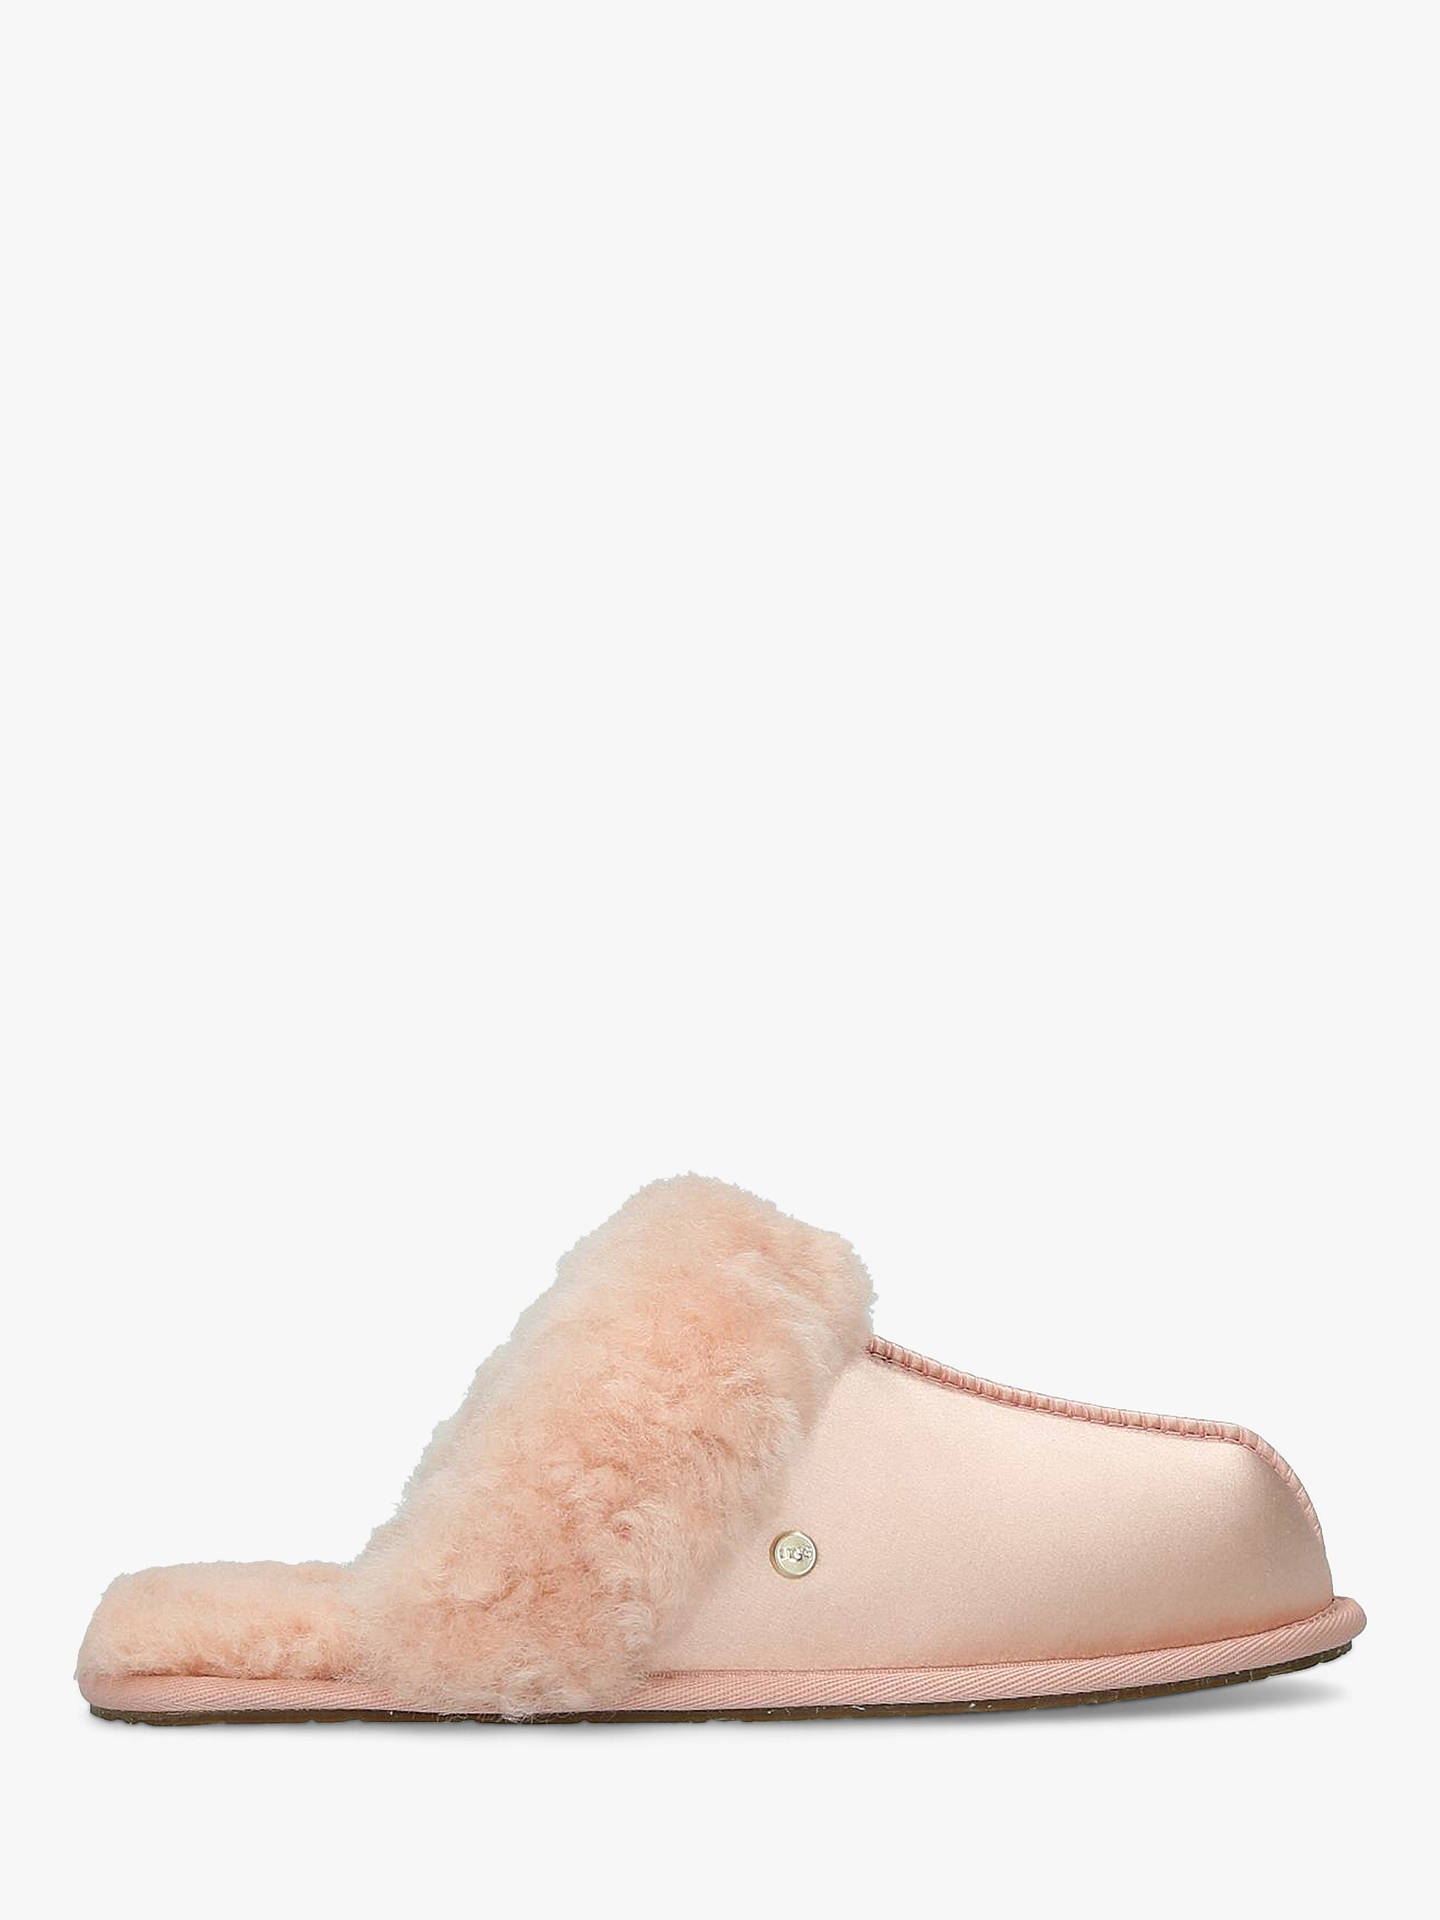 ddeb38e2a77 UGG Satin Scuffette Slippers at John Lewis & Partners